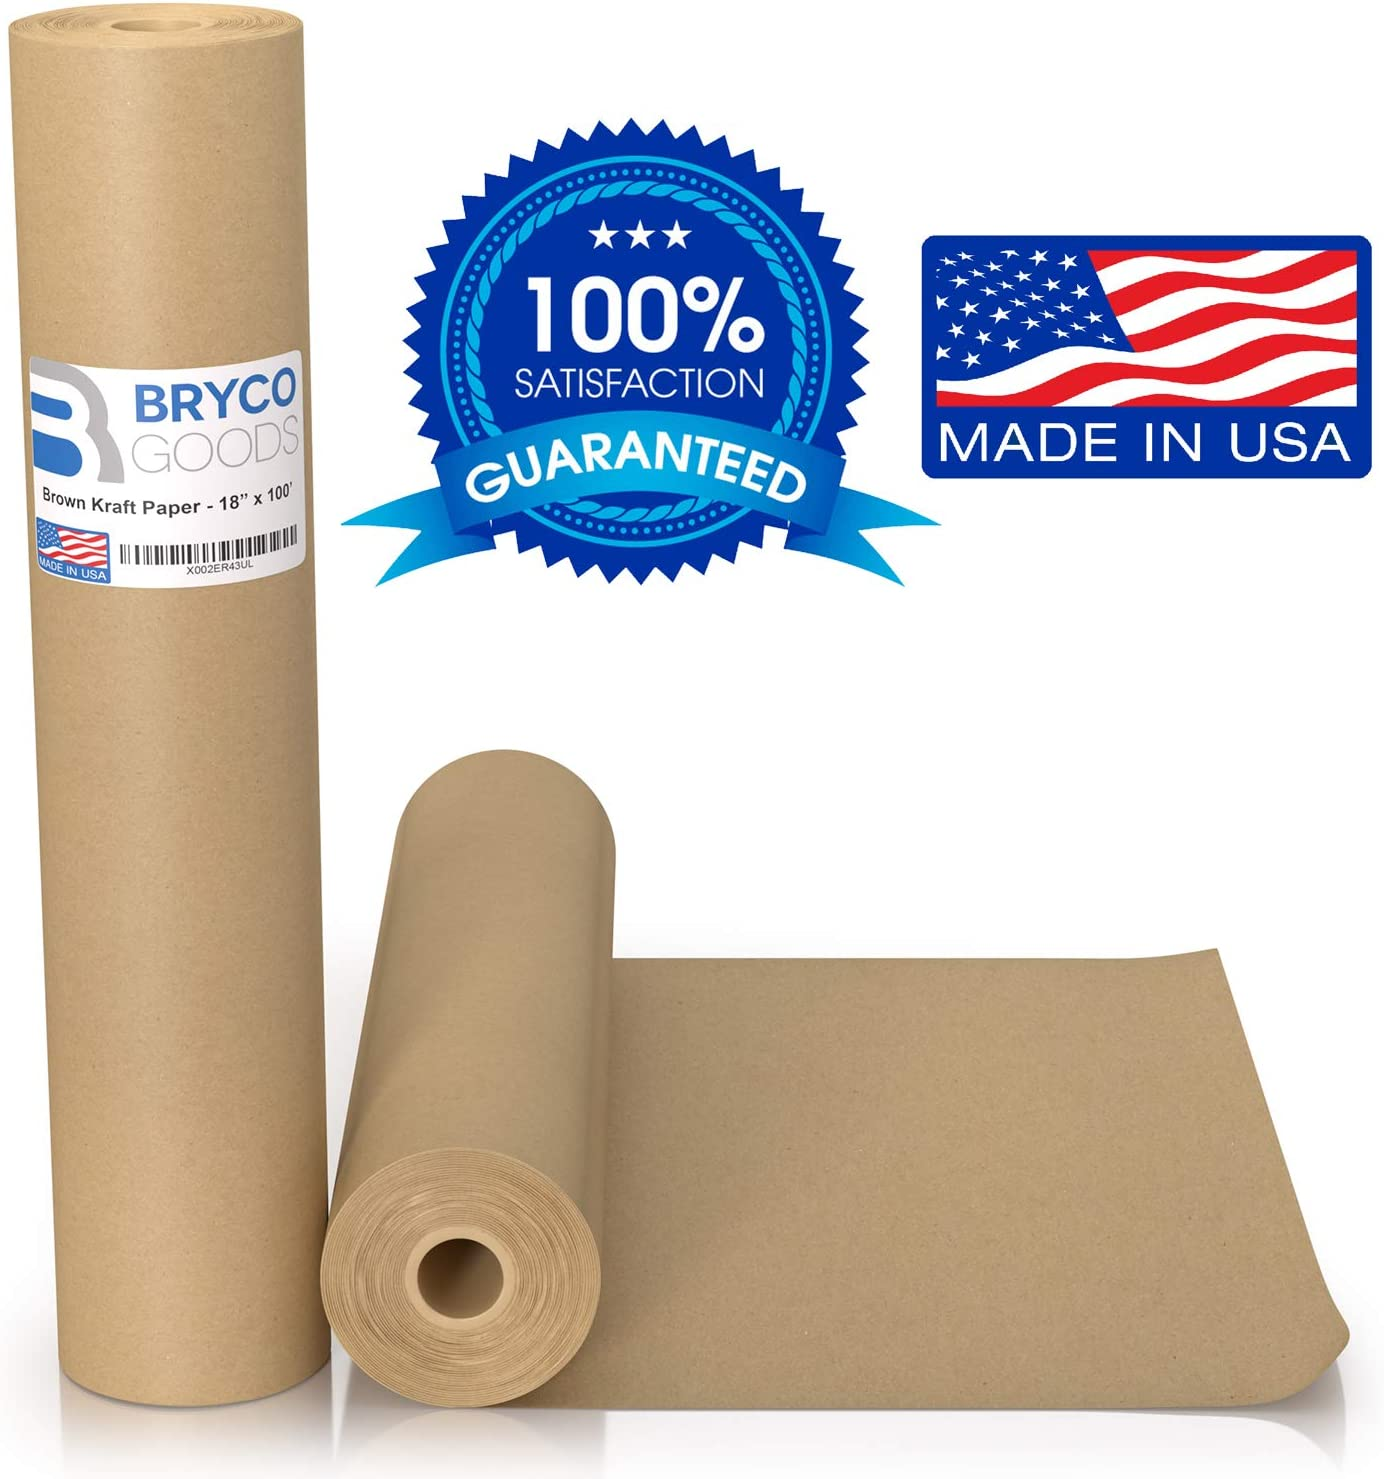 """Brown Kraft Paper Roll - 18"""" x 1,200"""" (100') Made in The USA - Ideal for Packing, Moving, Gift Wrapping, Postal, Shipping, Parcel, Wall Art, Crafts, Bulletin Boards, Floor Covering, Table Runner"""